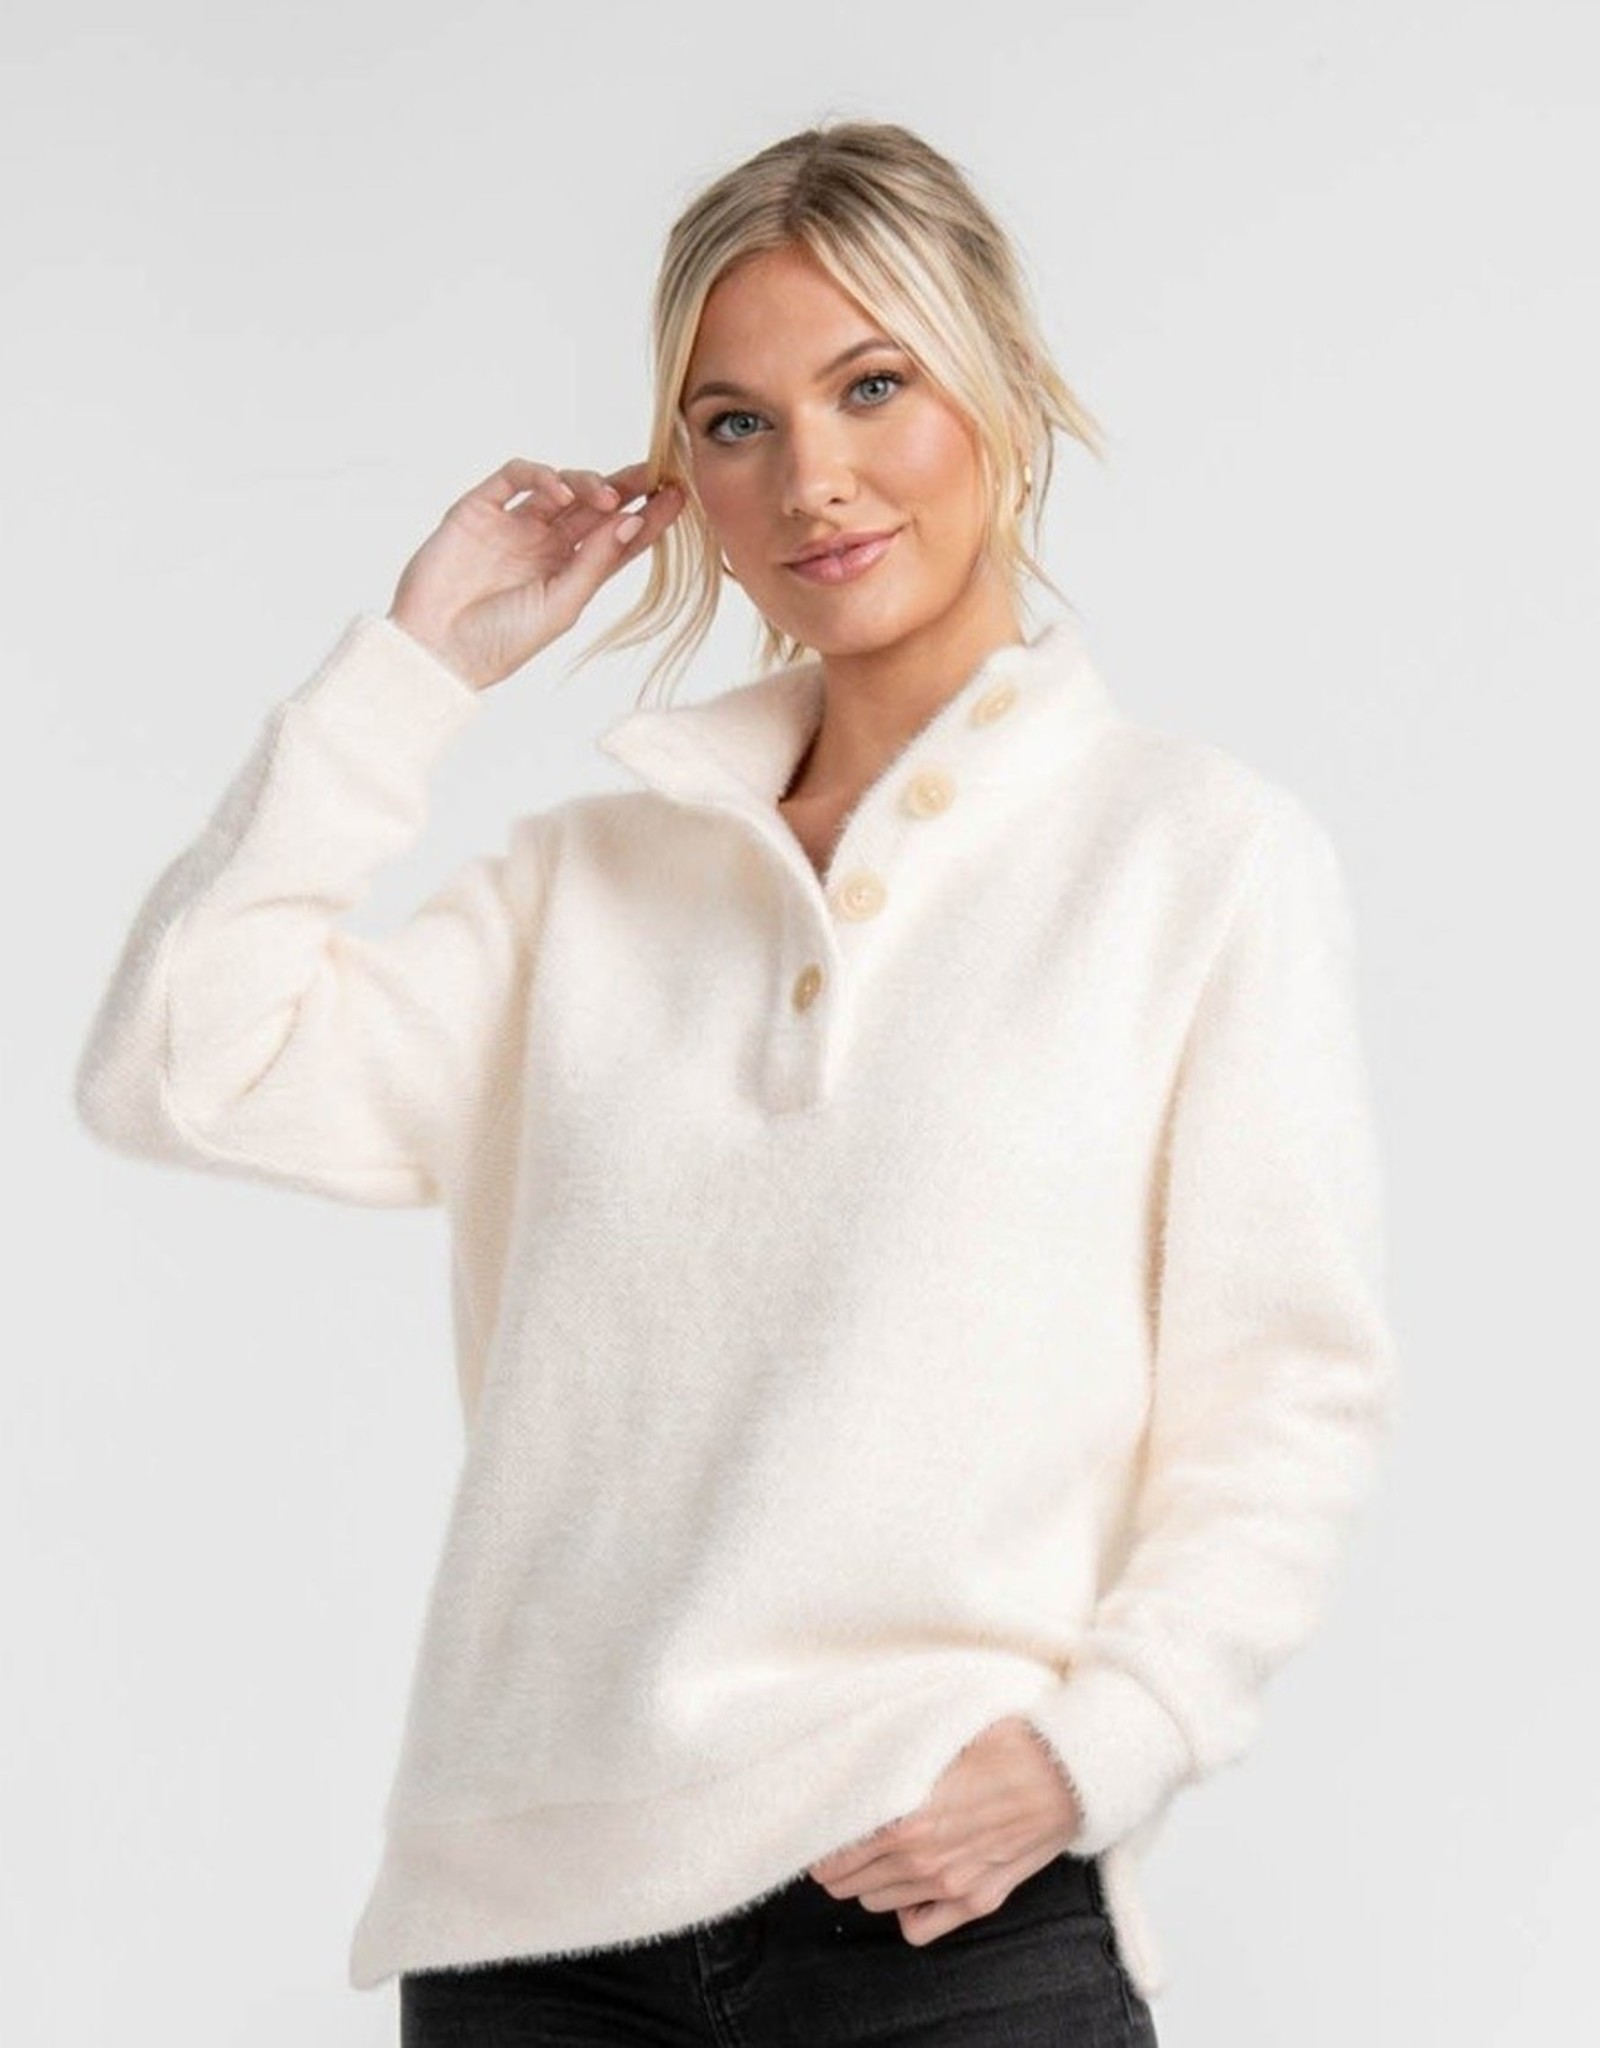 Southern Shirt Sweater Knit Pullover